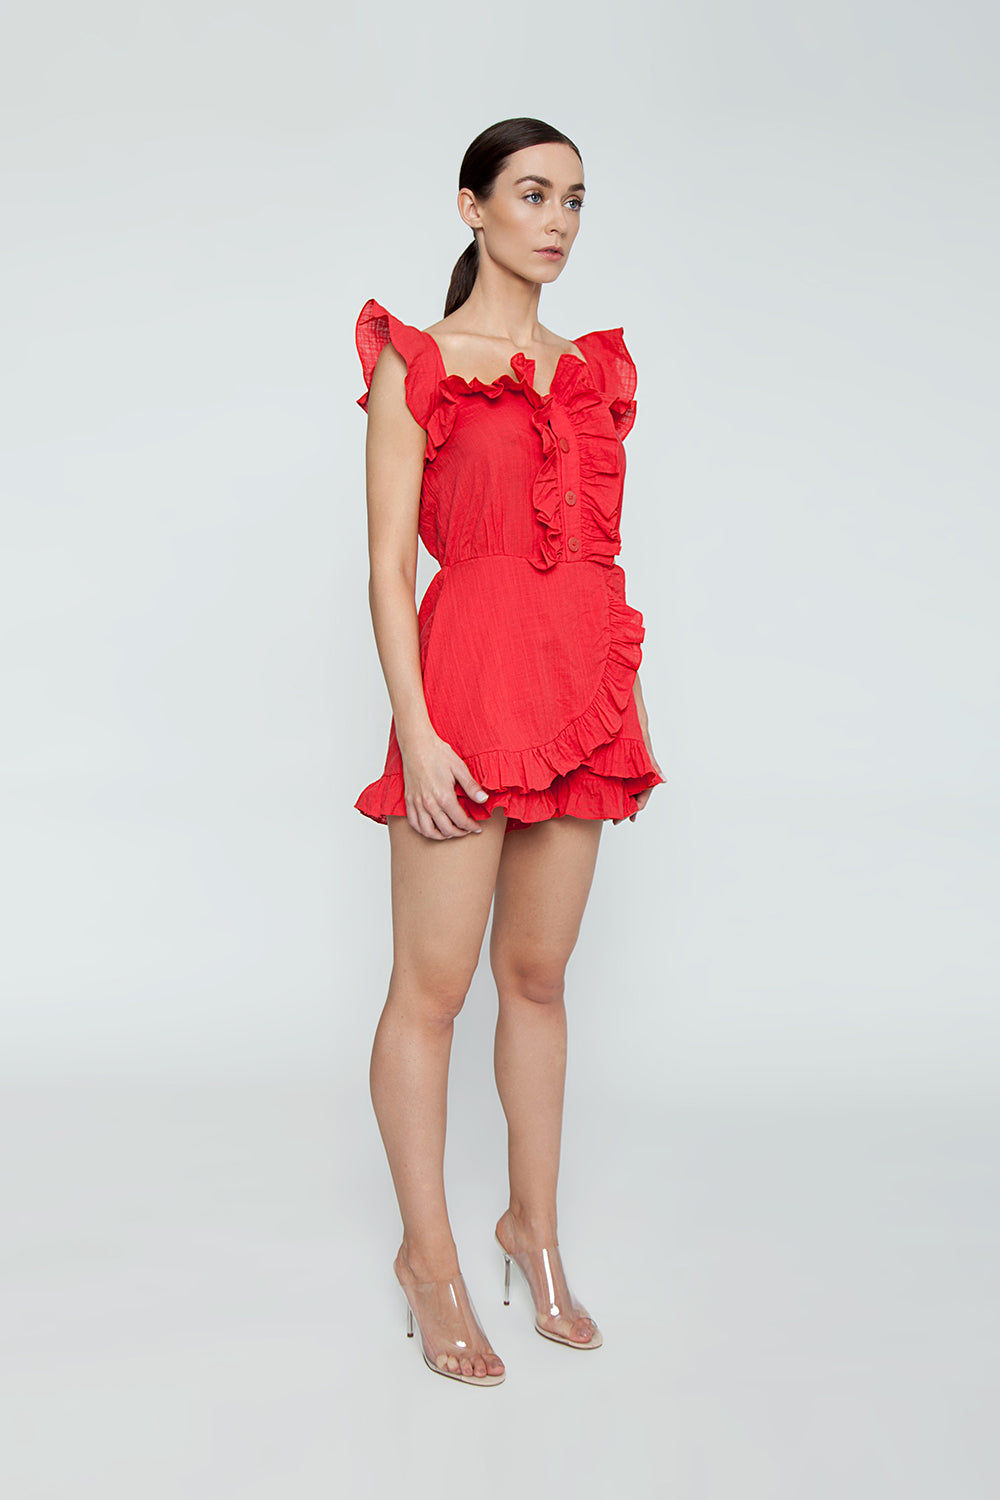 CLUBE BOSSA Follina Ruffle Romper - Pepper Red Romper | Pepper Red| Clube Bossa Follina Ruffle Romper - Pepper Red Ruffle romper Straight neckline  Ruffle sleeves Ruffle front detail  Front button closure  Side View